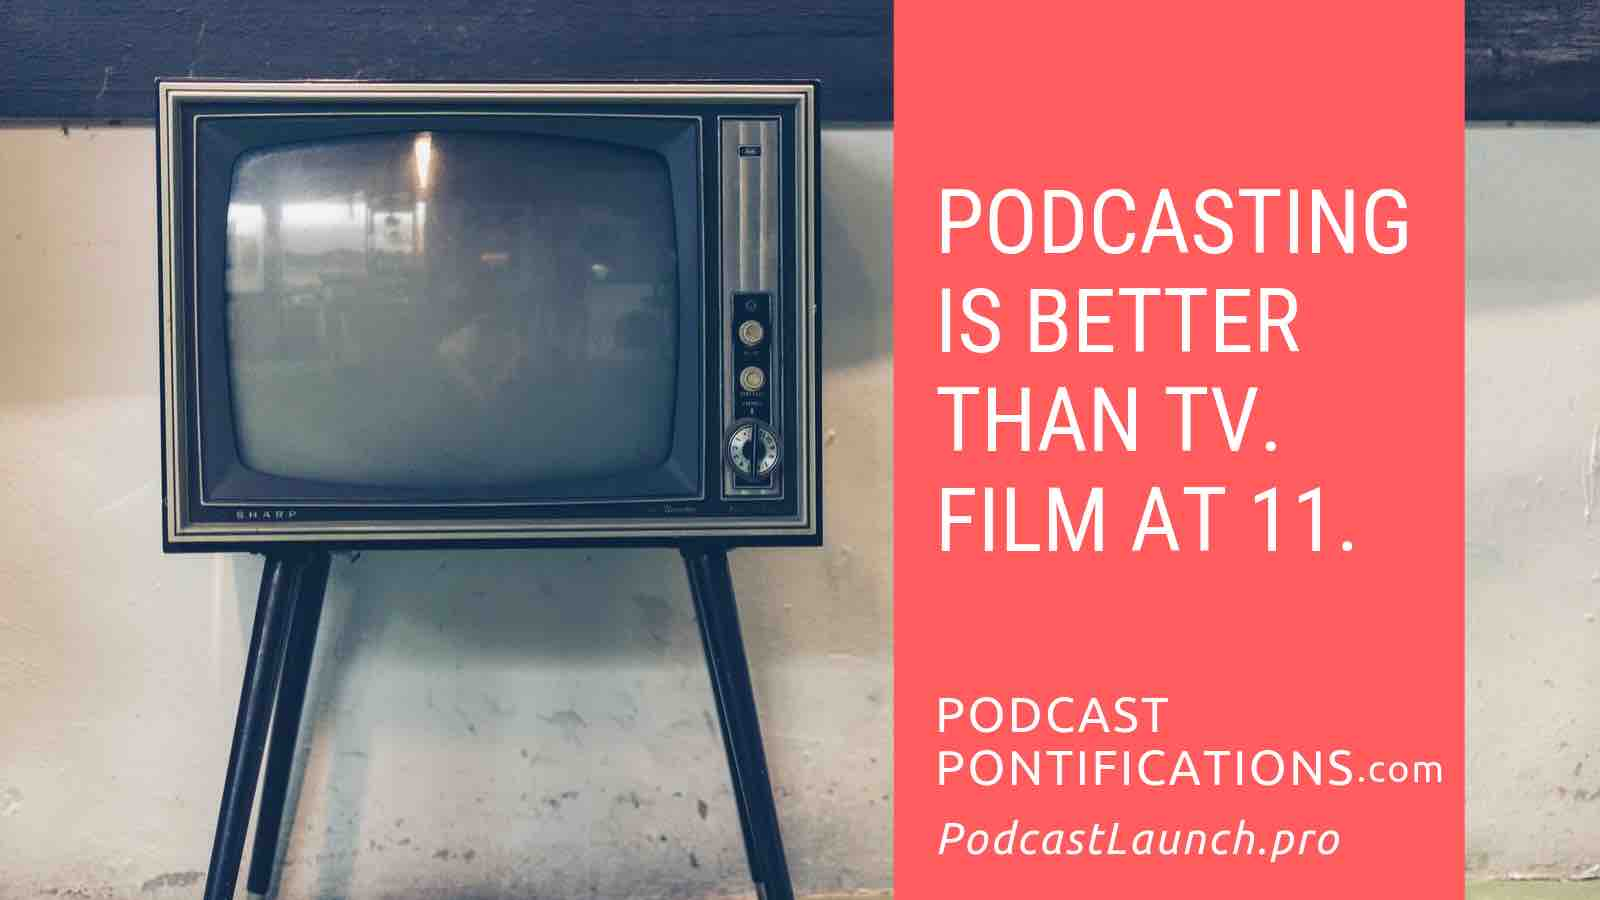 Podcasting is Better Than TV. Film At 11.